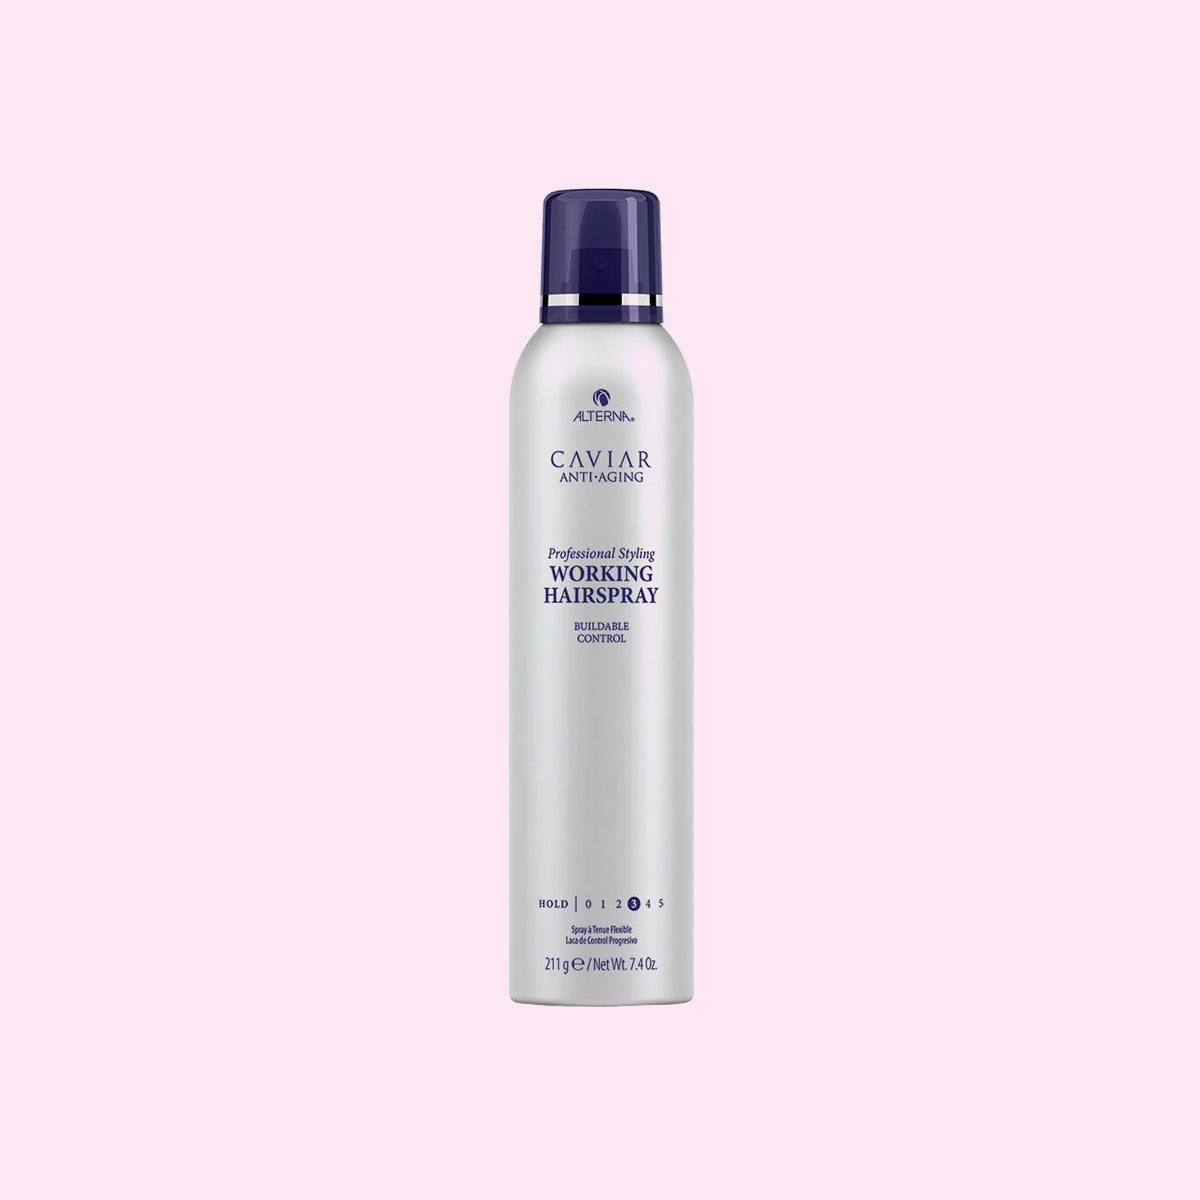 Alterna Caviar Professional Styling Working Hairspray 211g